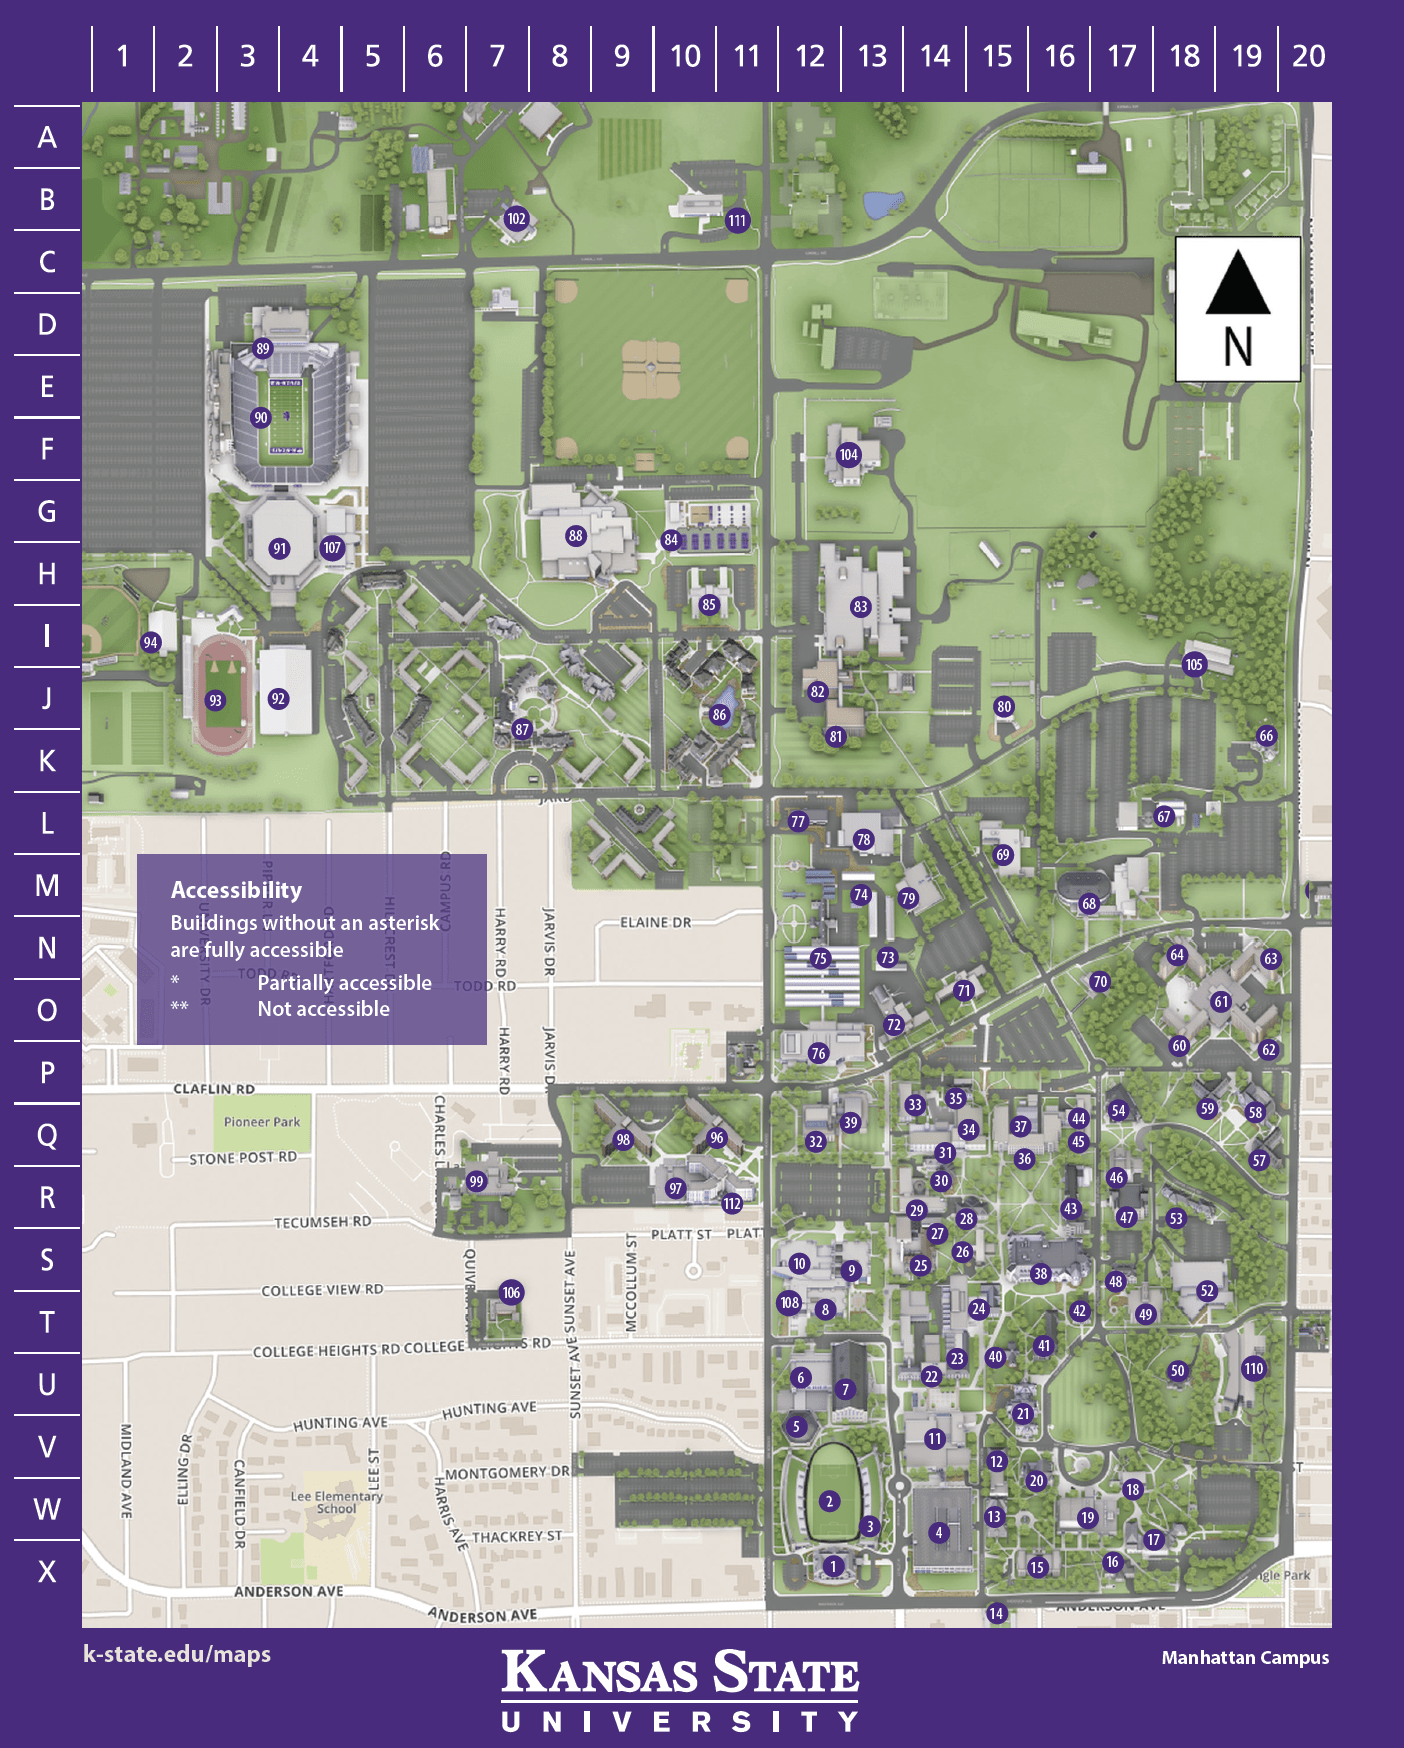 University Of Kansas Map : university, kansas, Campus, Kansas, State, Univeristy, Visitors, Guide